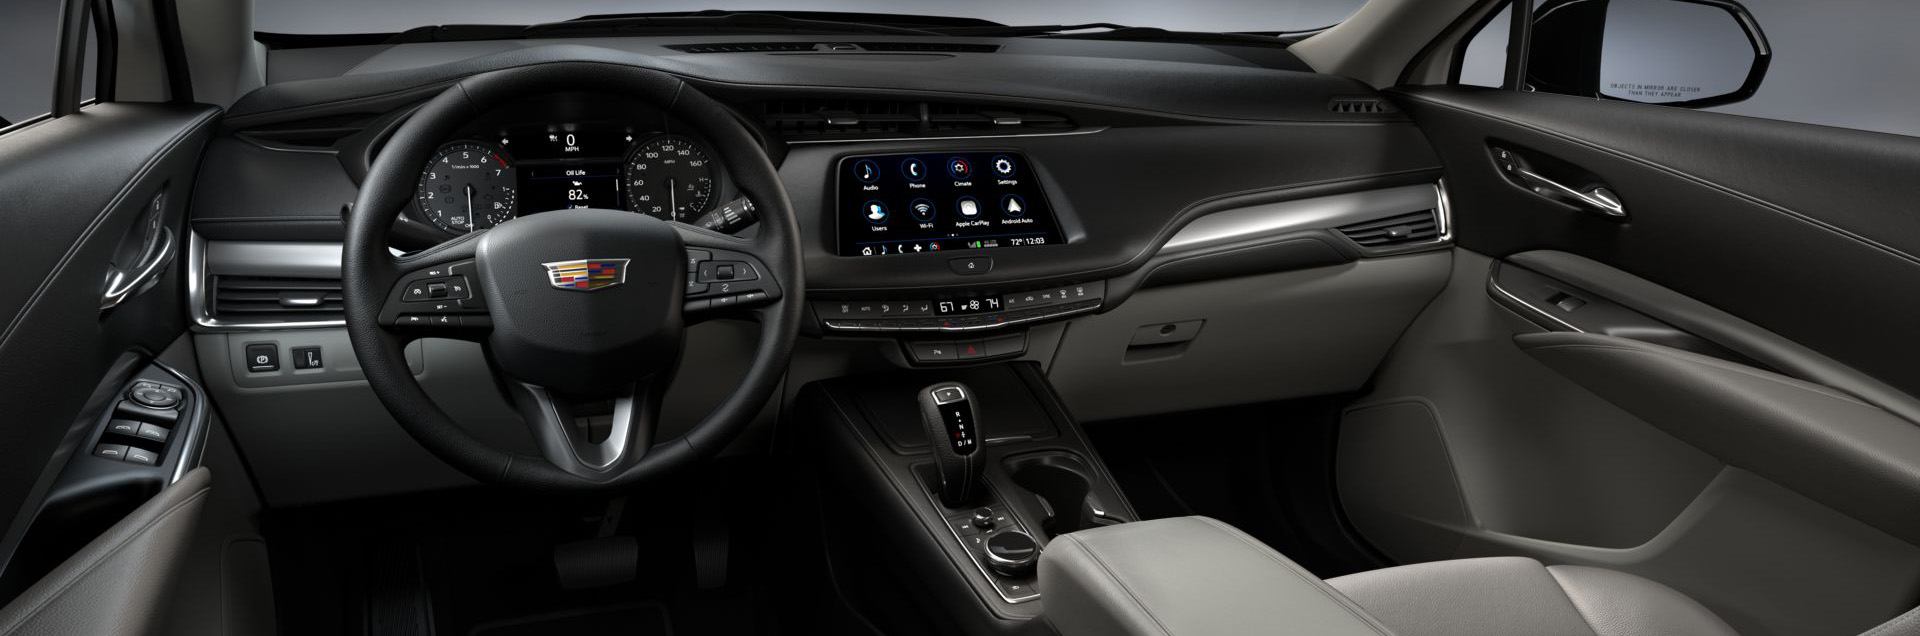 2019 Cadillac Xt4 Light Platinum Leatherette Interior With Jet Black Accents Hrq Cropped